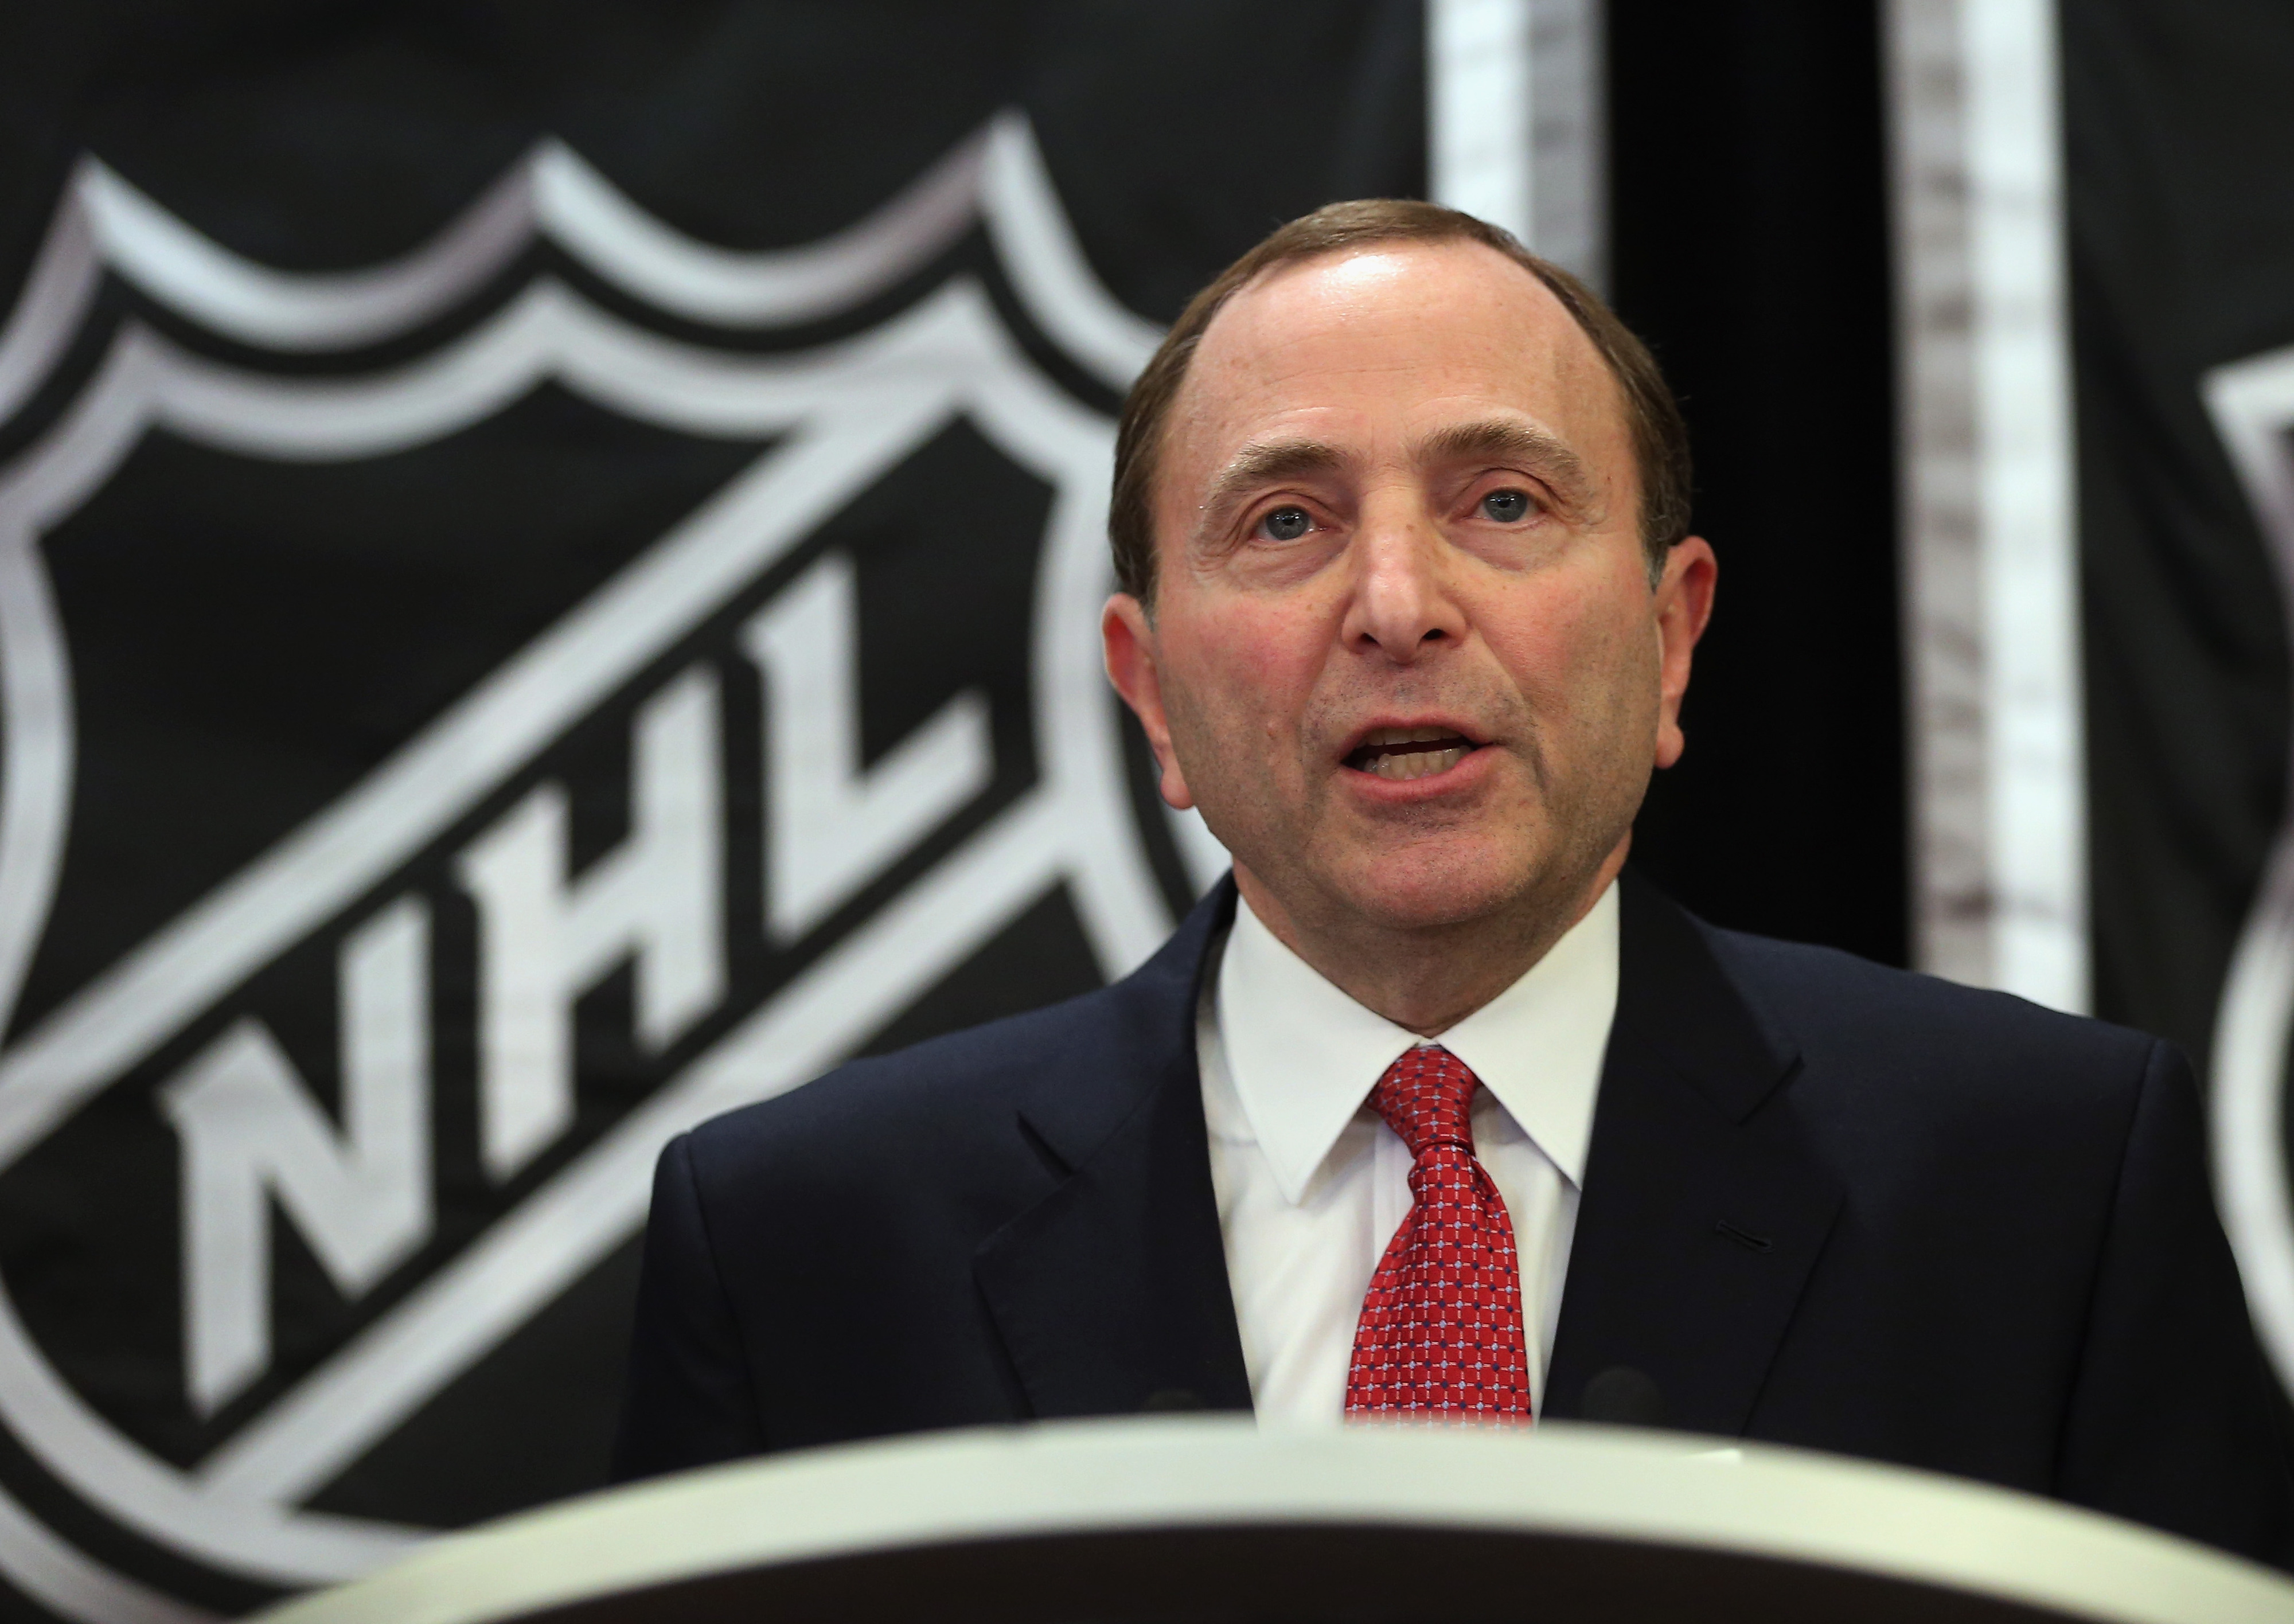 The NHL is not known for doing the due dilligence on markets or on potential owners. They are, however, known to take the money and run without thinking of the long-term.